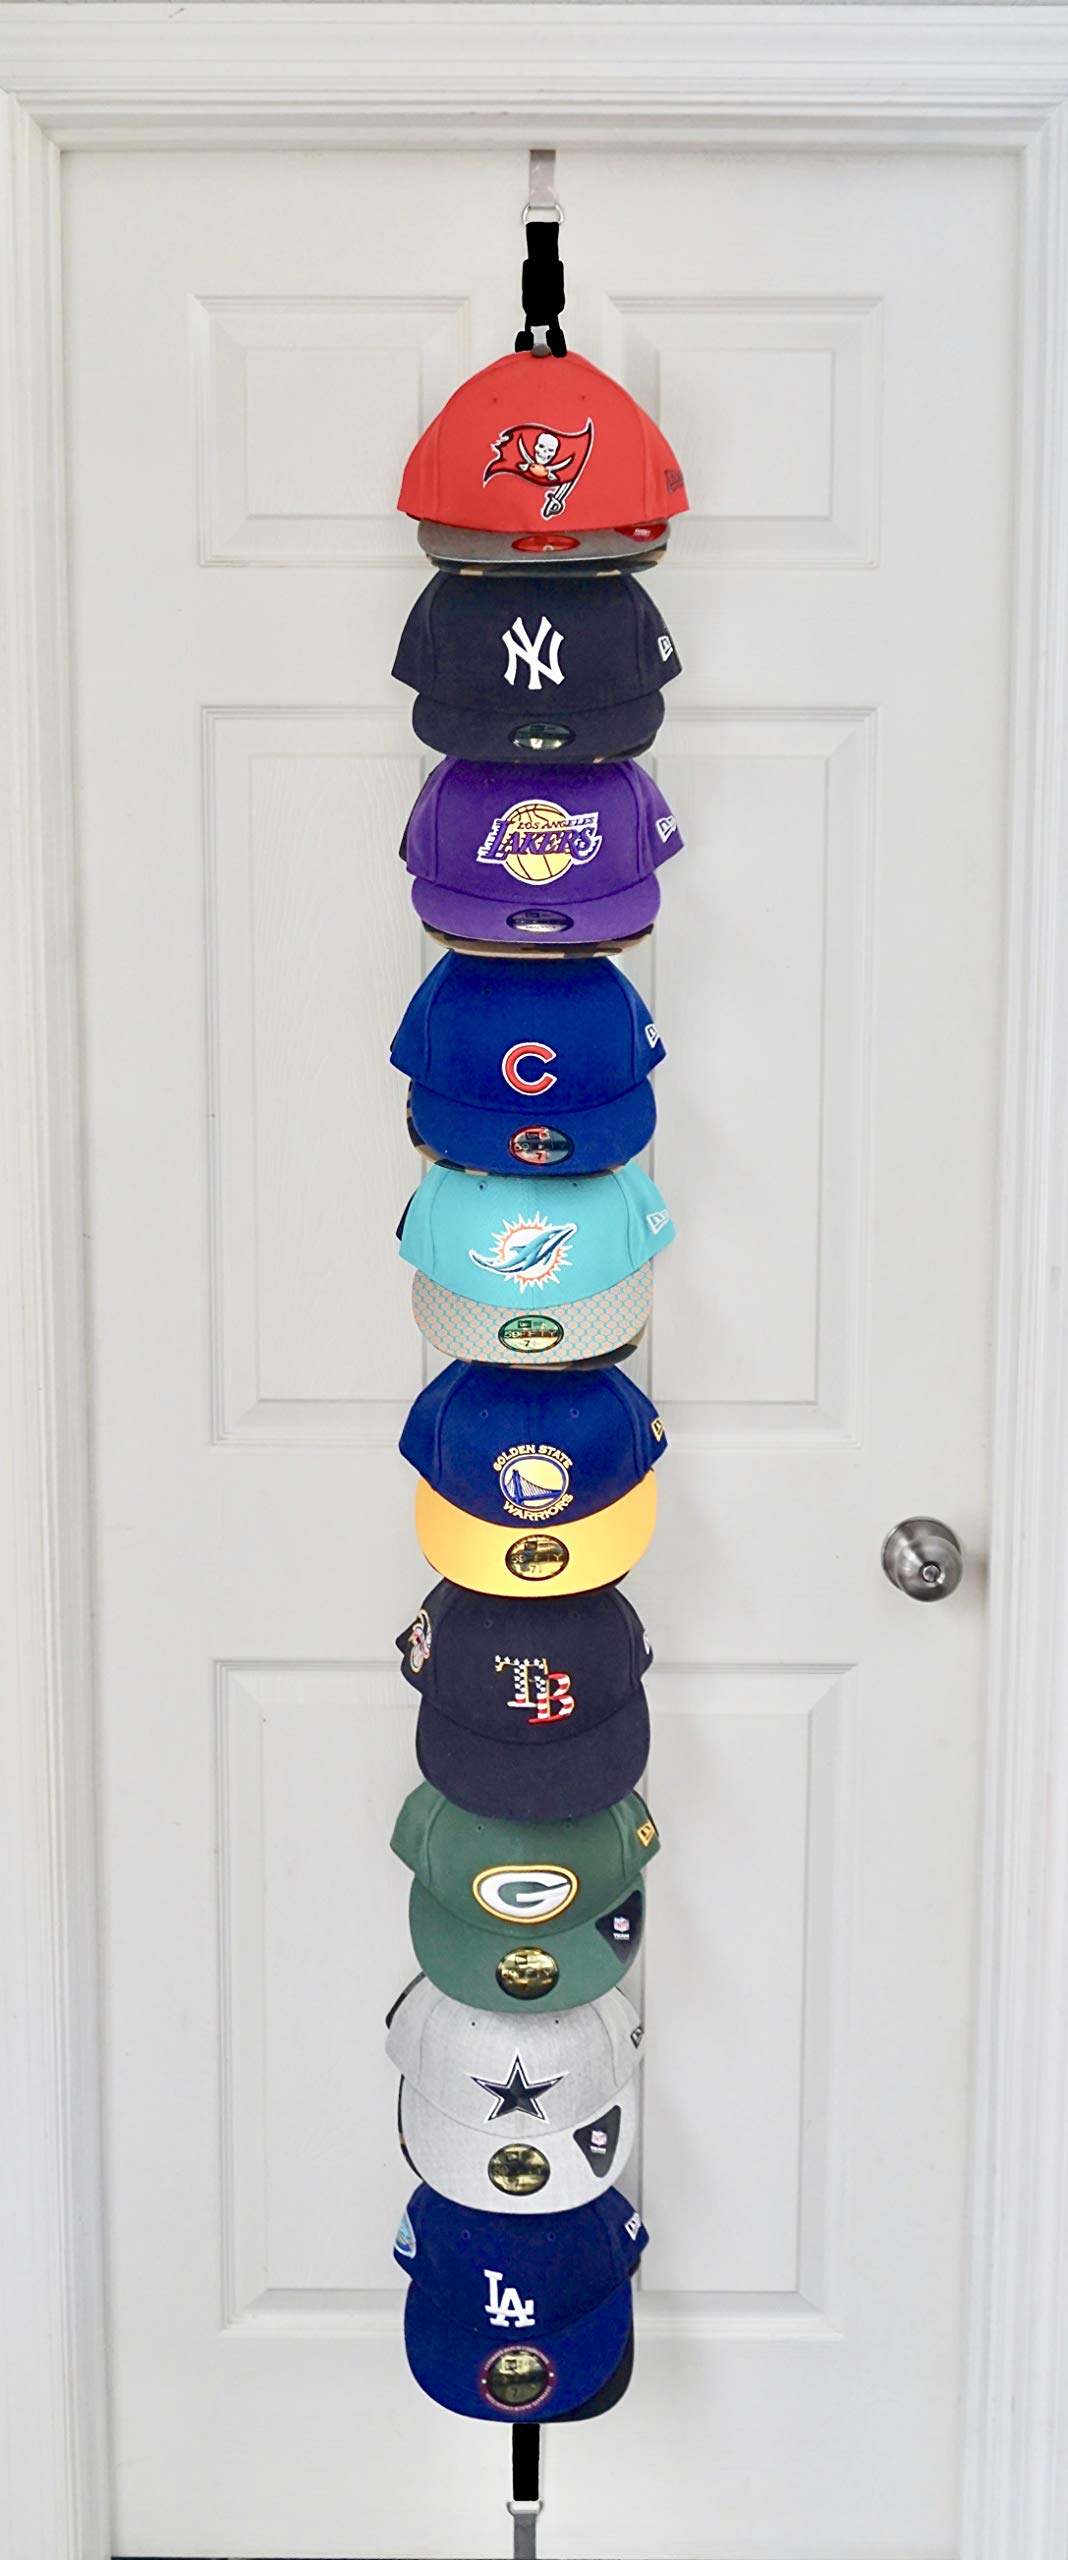 The Clip Hanger Hat Rack Holds 20 Hats on 1 Strap Any Size Any Style Any Shape Wall or Door (Black)